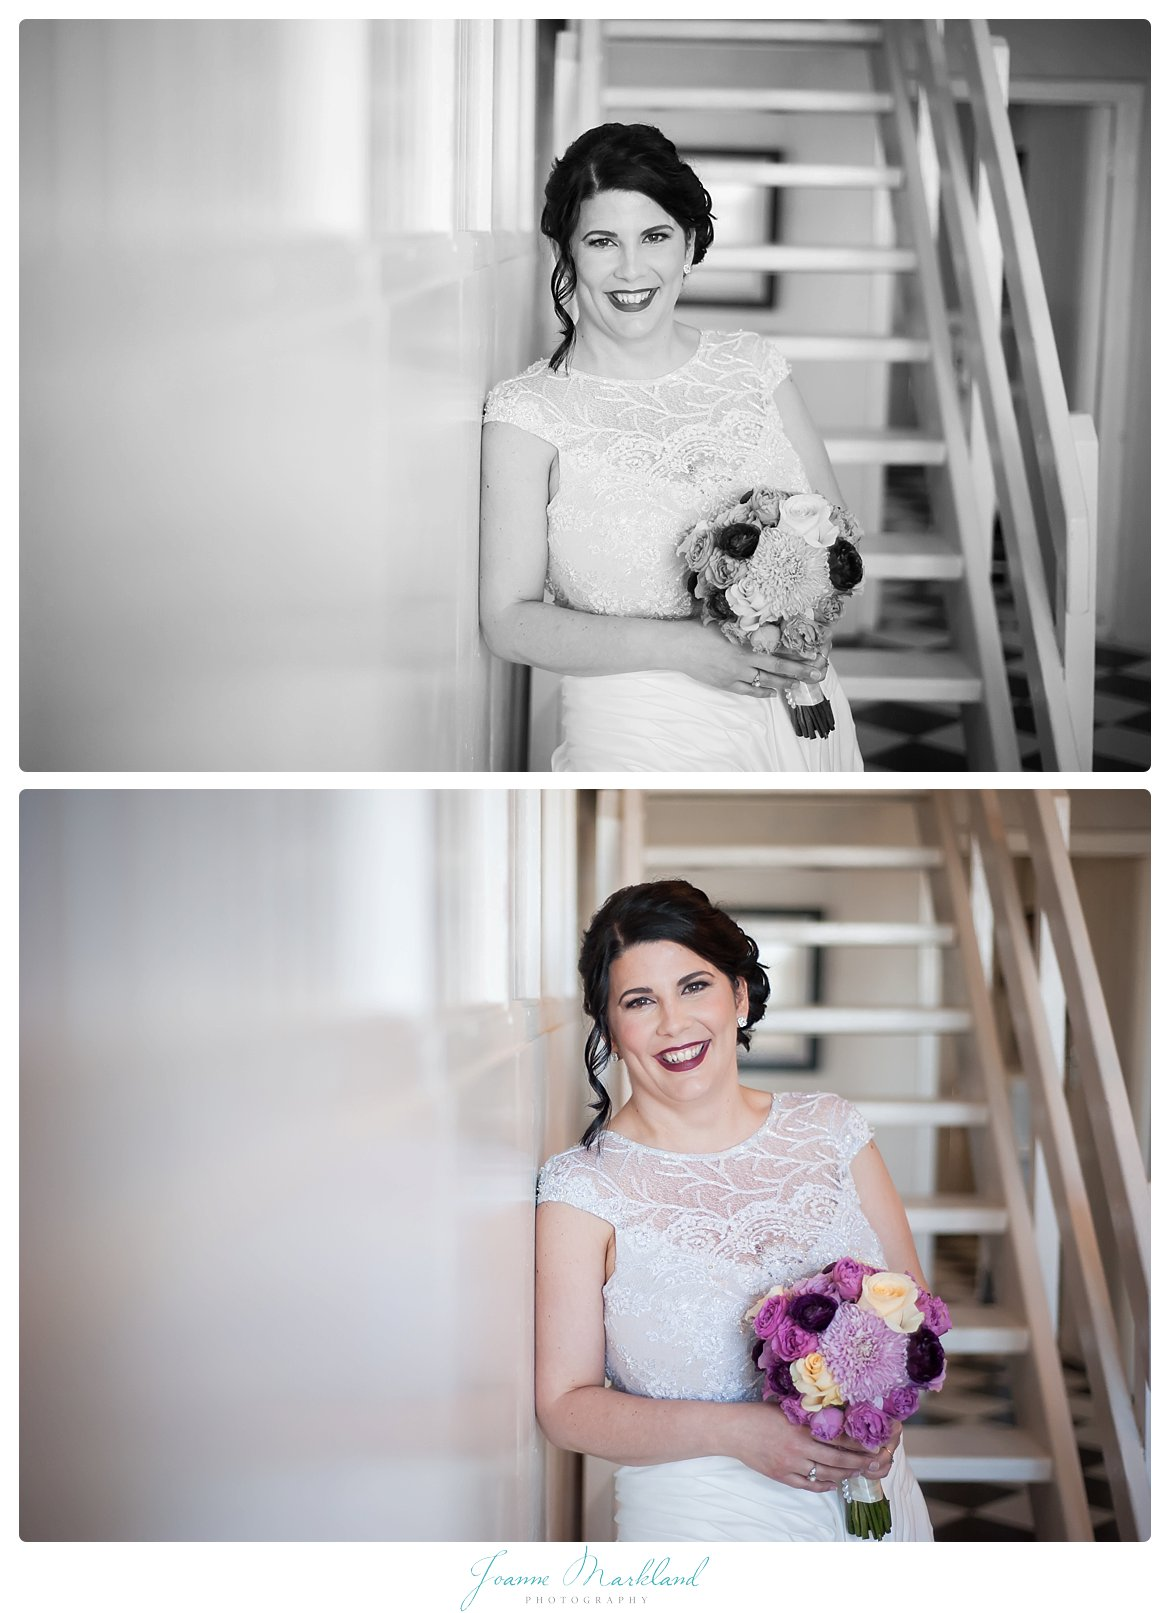 boorwater-wedding-hopefield-west-coast-cape-town-joanne-markland-photography-012